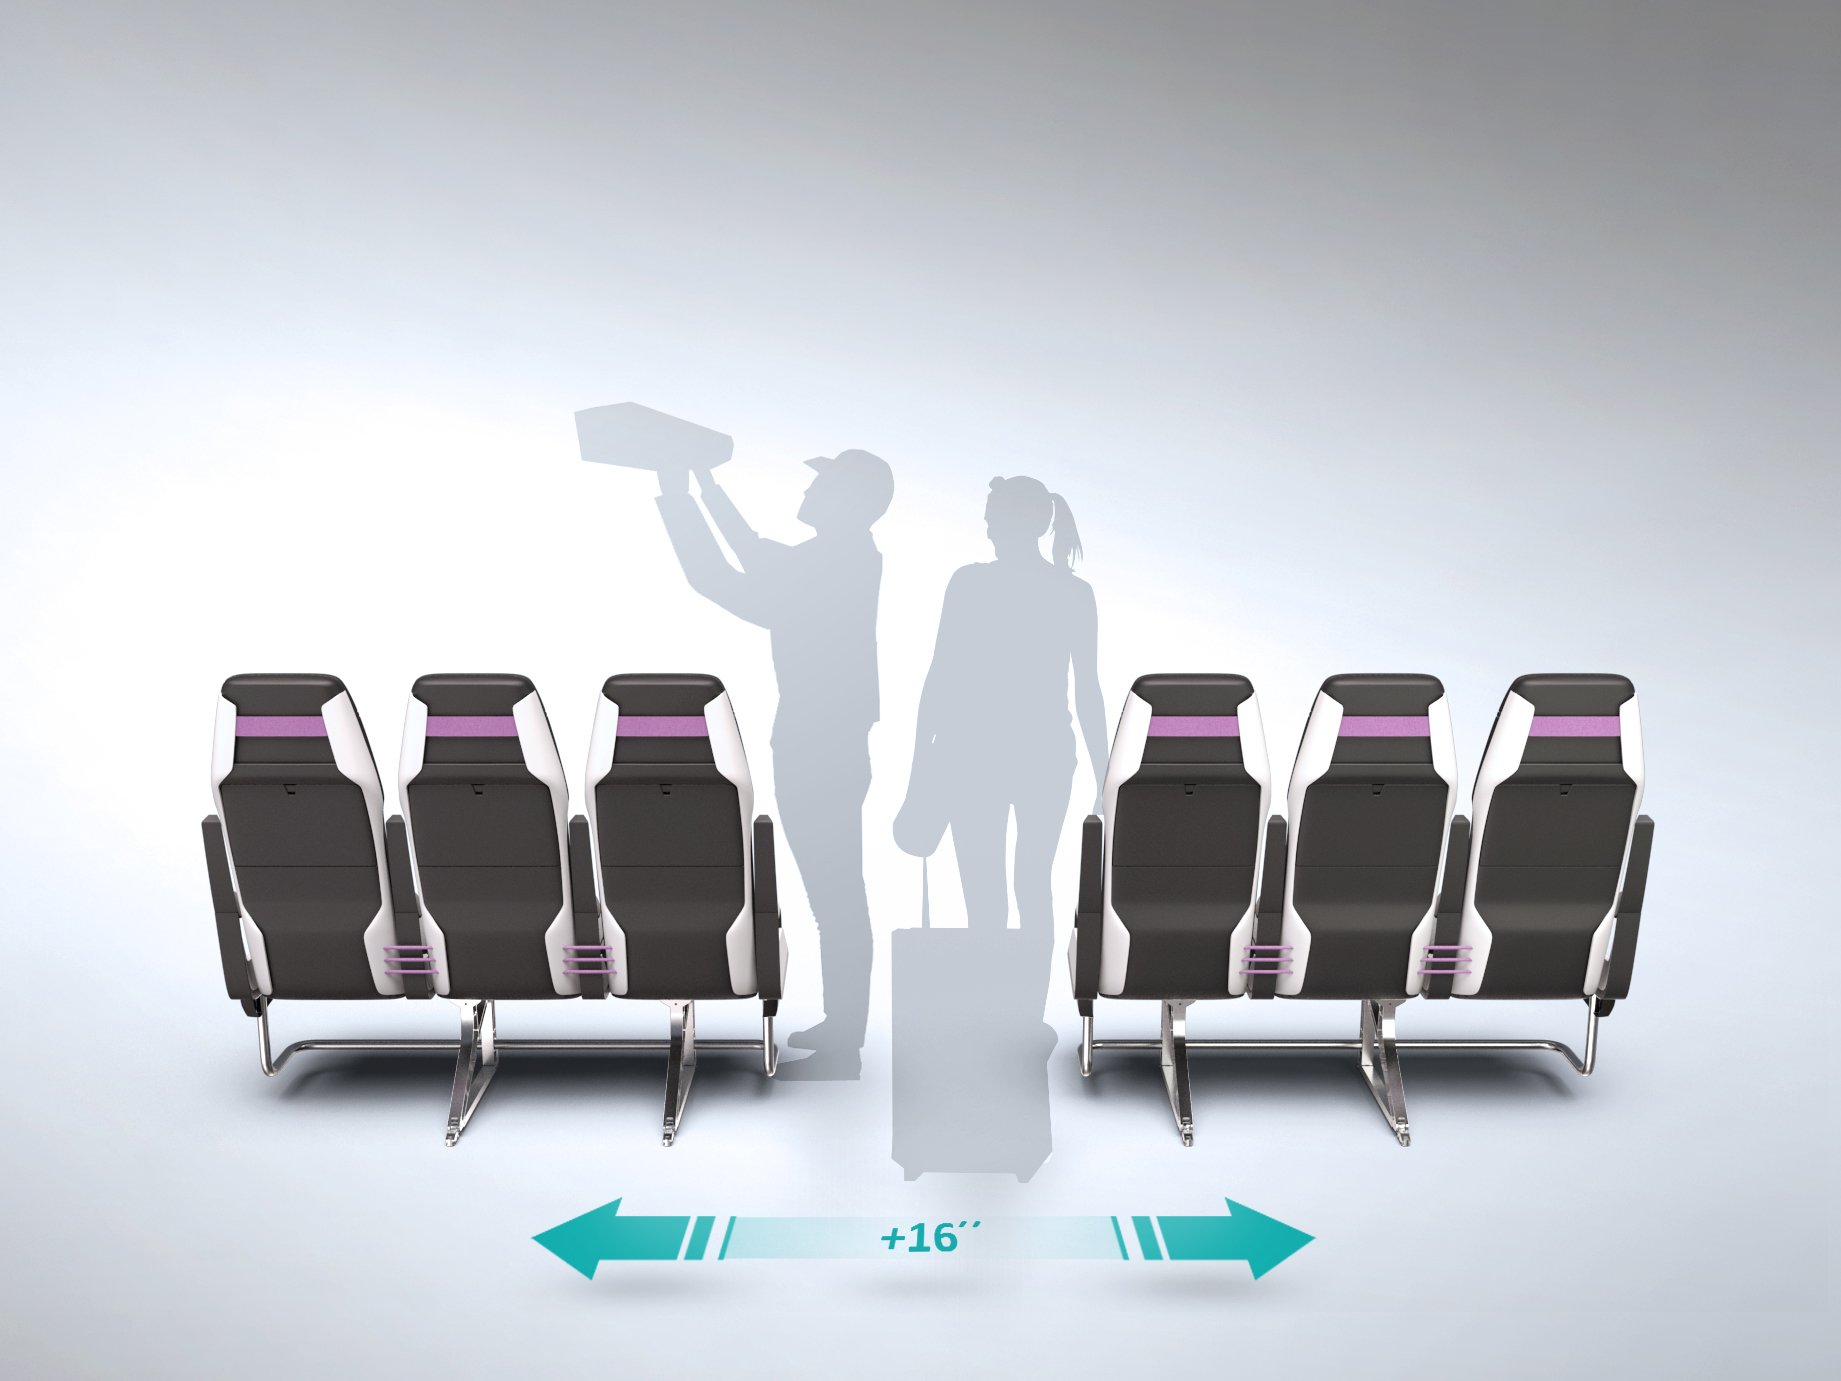 This Concept Allows You To Expand The Width Of An Aircraft Aisle